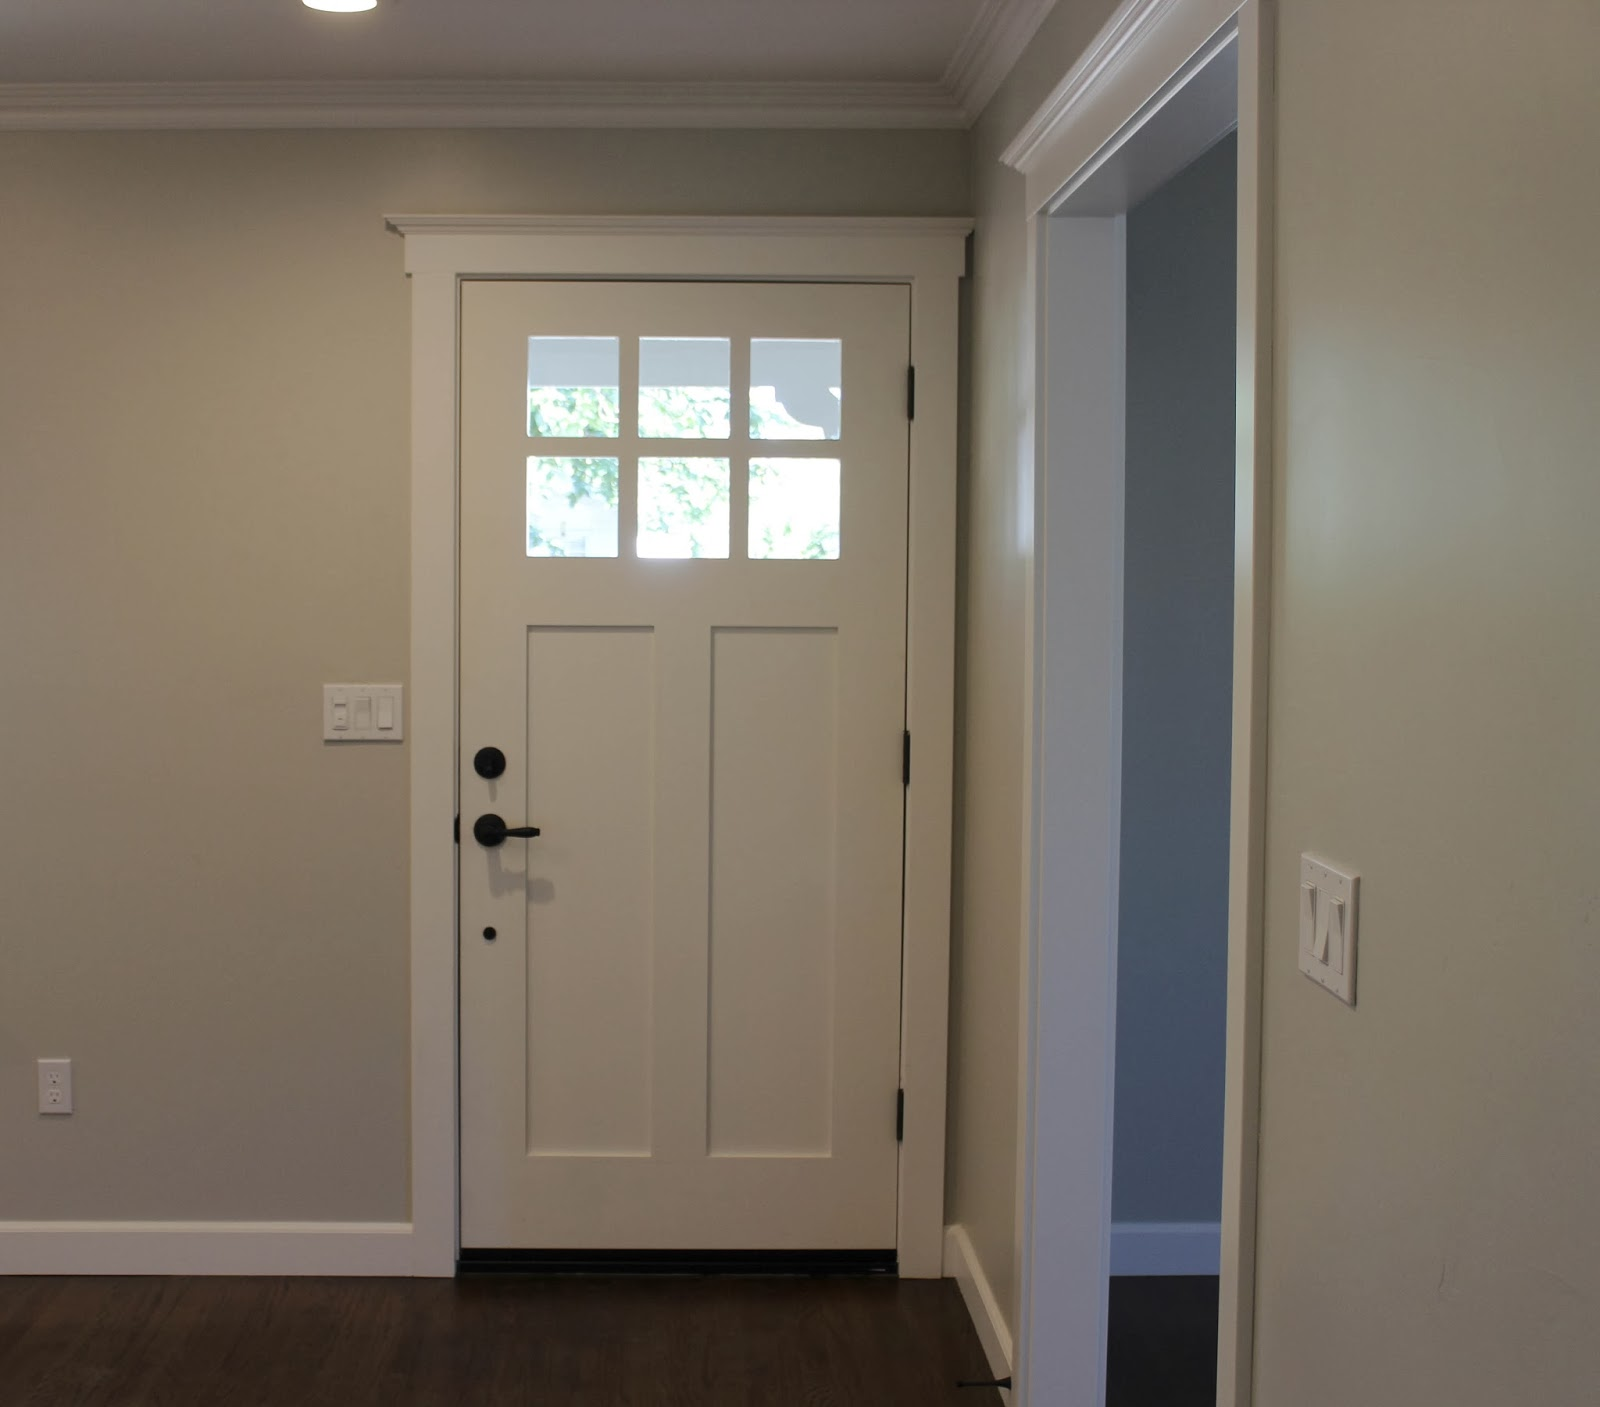 Traditional door casing styles vs contemporary door casing for Painted interior door designs